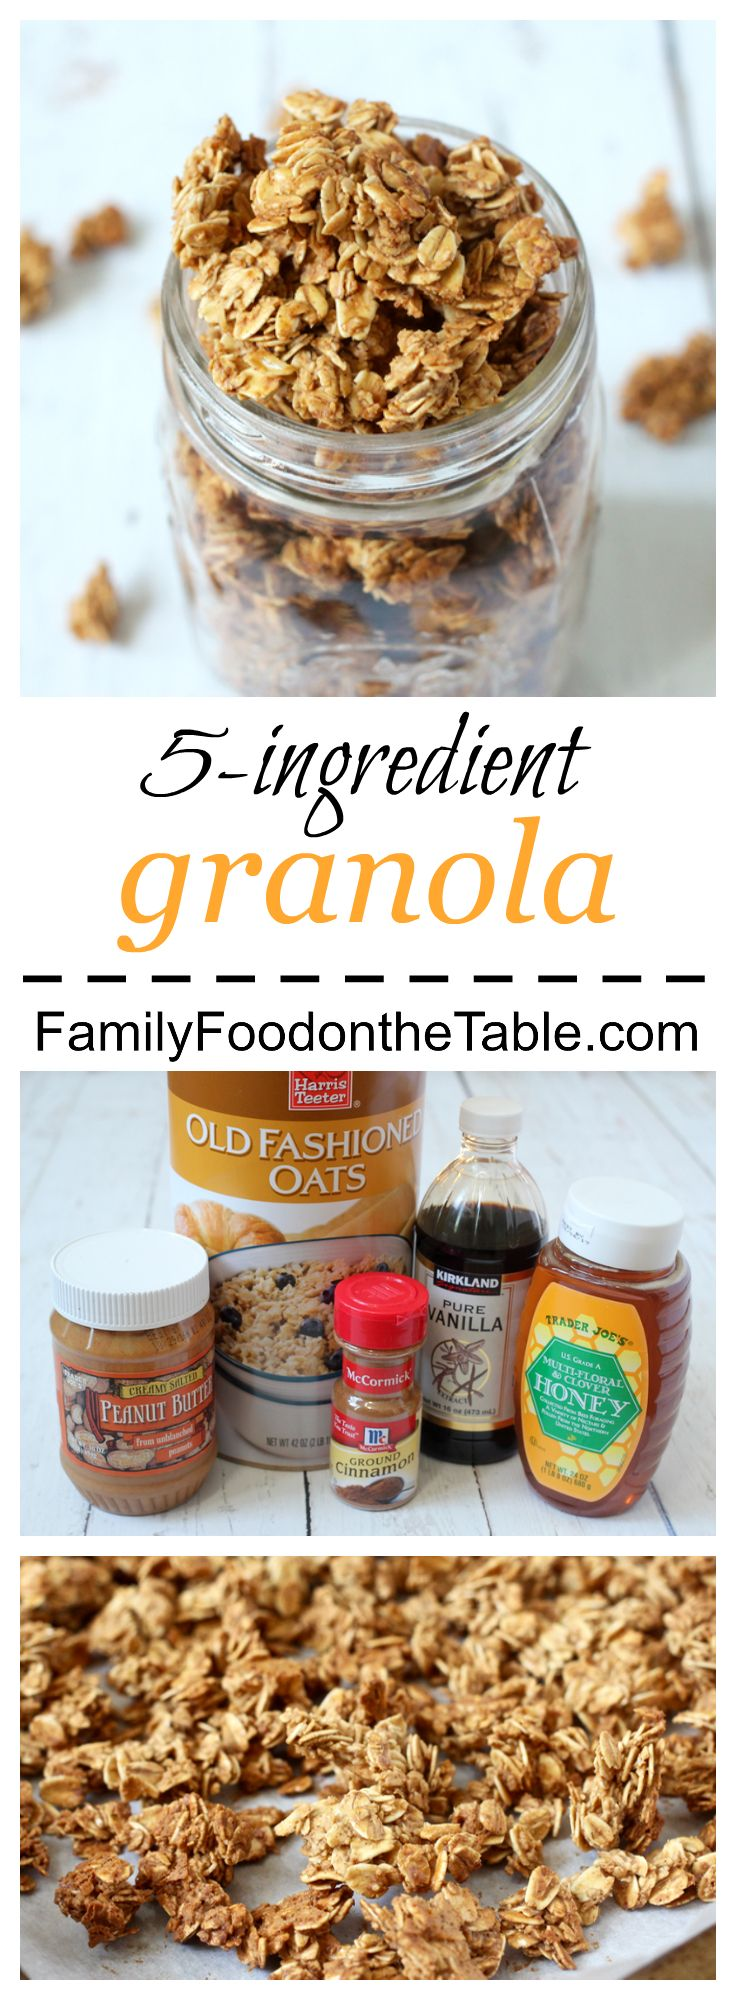 An easy, light homemade granola with just 5 ingredients! | FamilyFoodontheTable.com